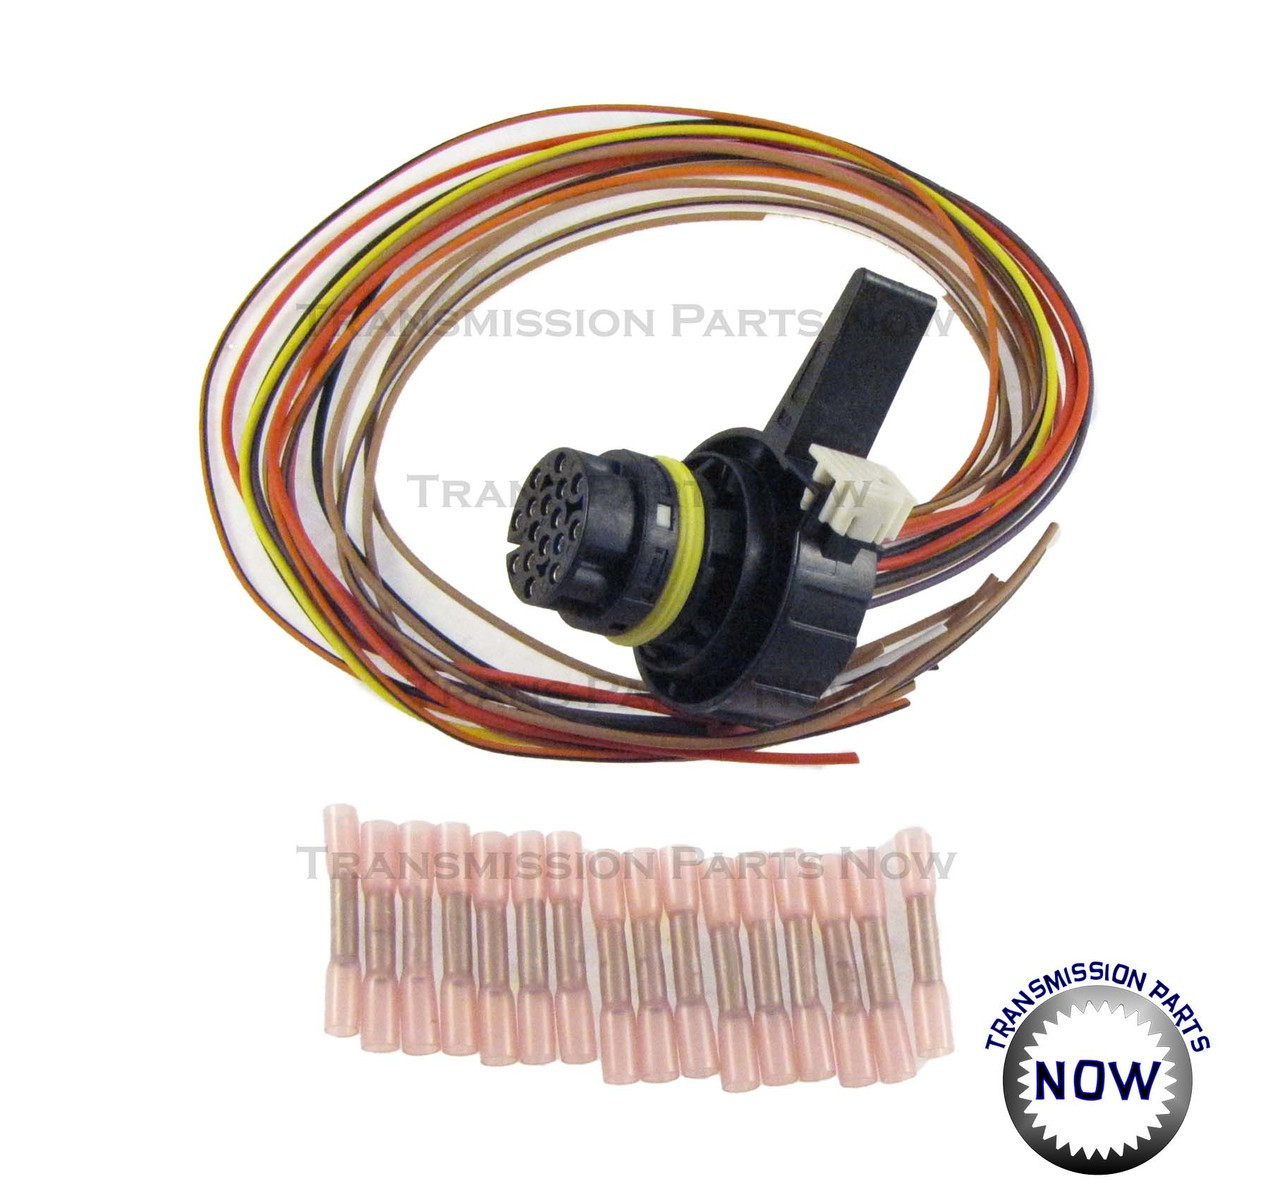 6l80 connector repair kit rostra fast free shipping to the us gm wiring harness repair parts [ 1280 x 1181 Pixel ]